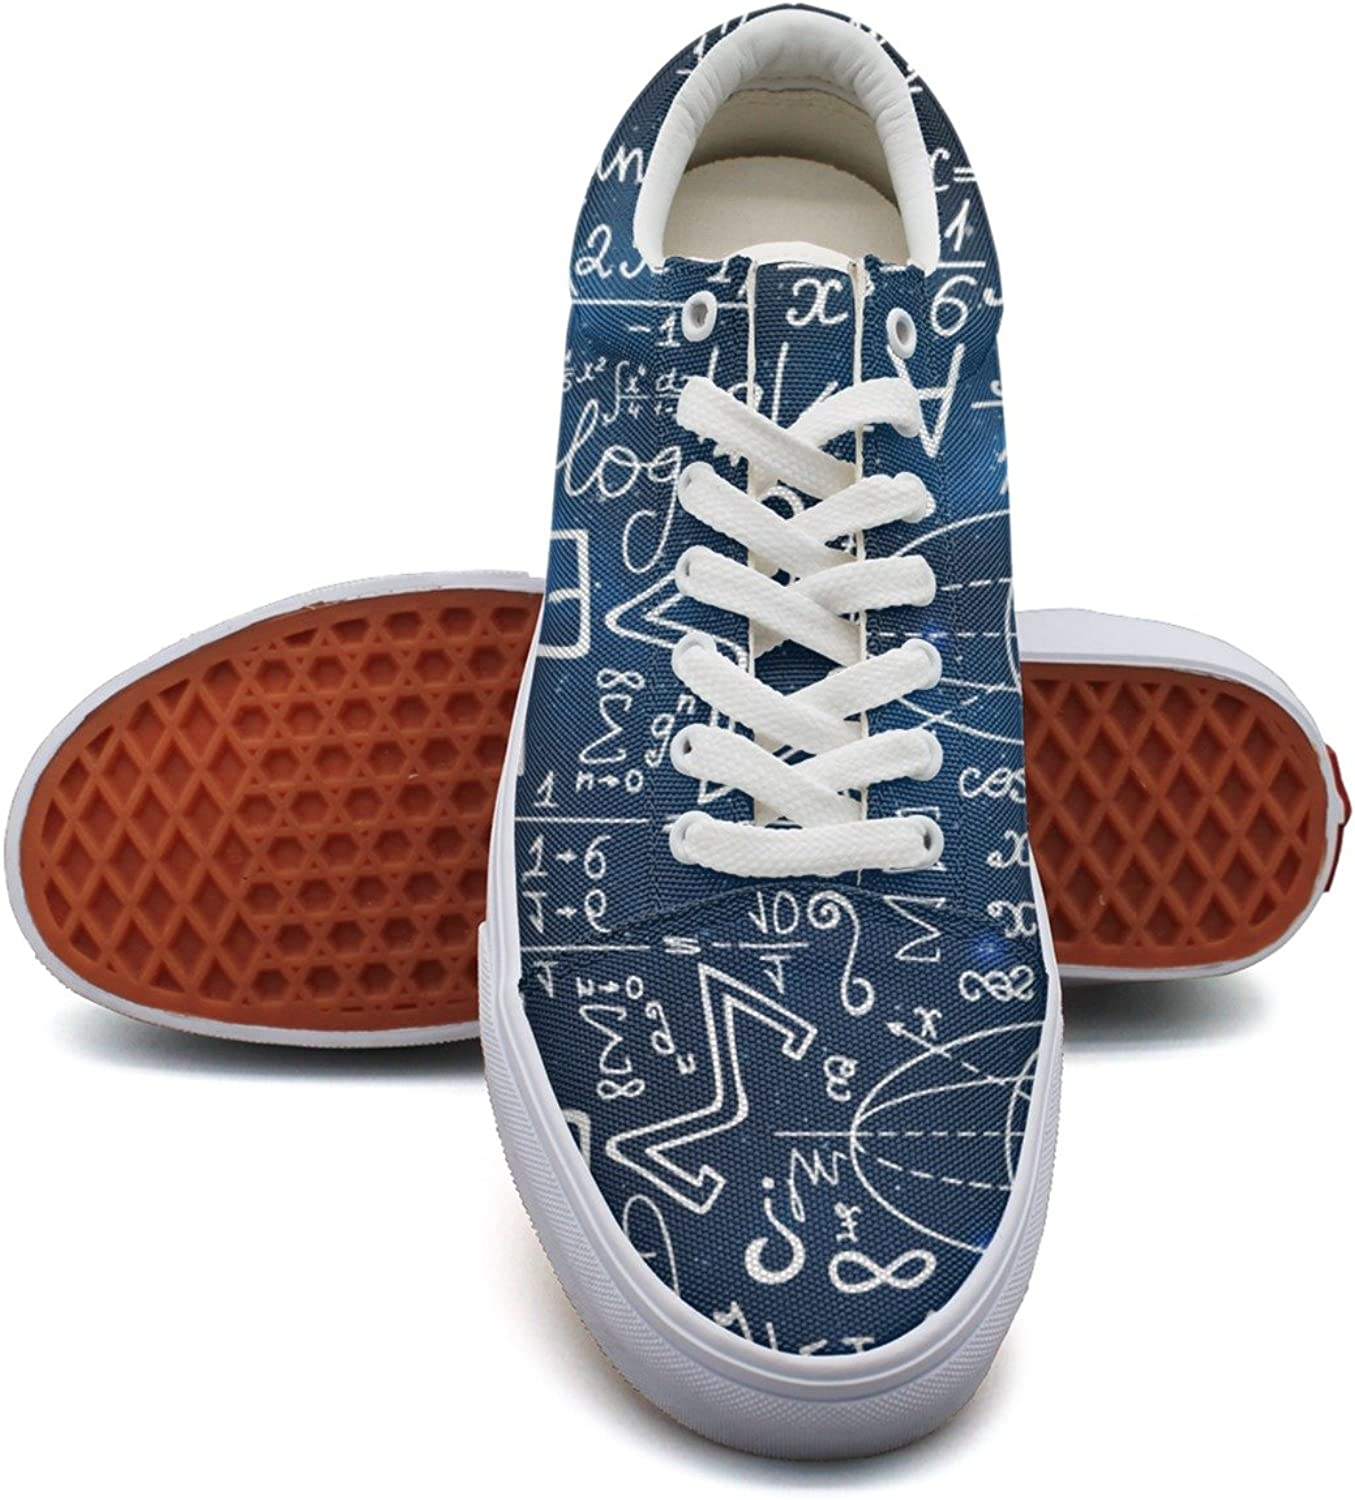 Feenfling Galaxy Mathematical Signs Formula Womens Casual Sneakers shoes Low Top Trendy Athletic Sneakers for Women Girls